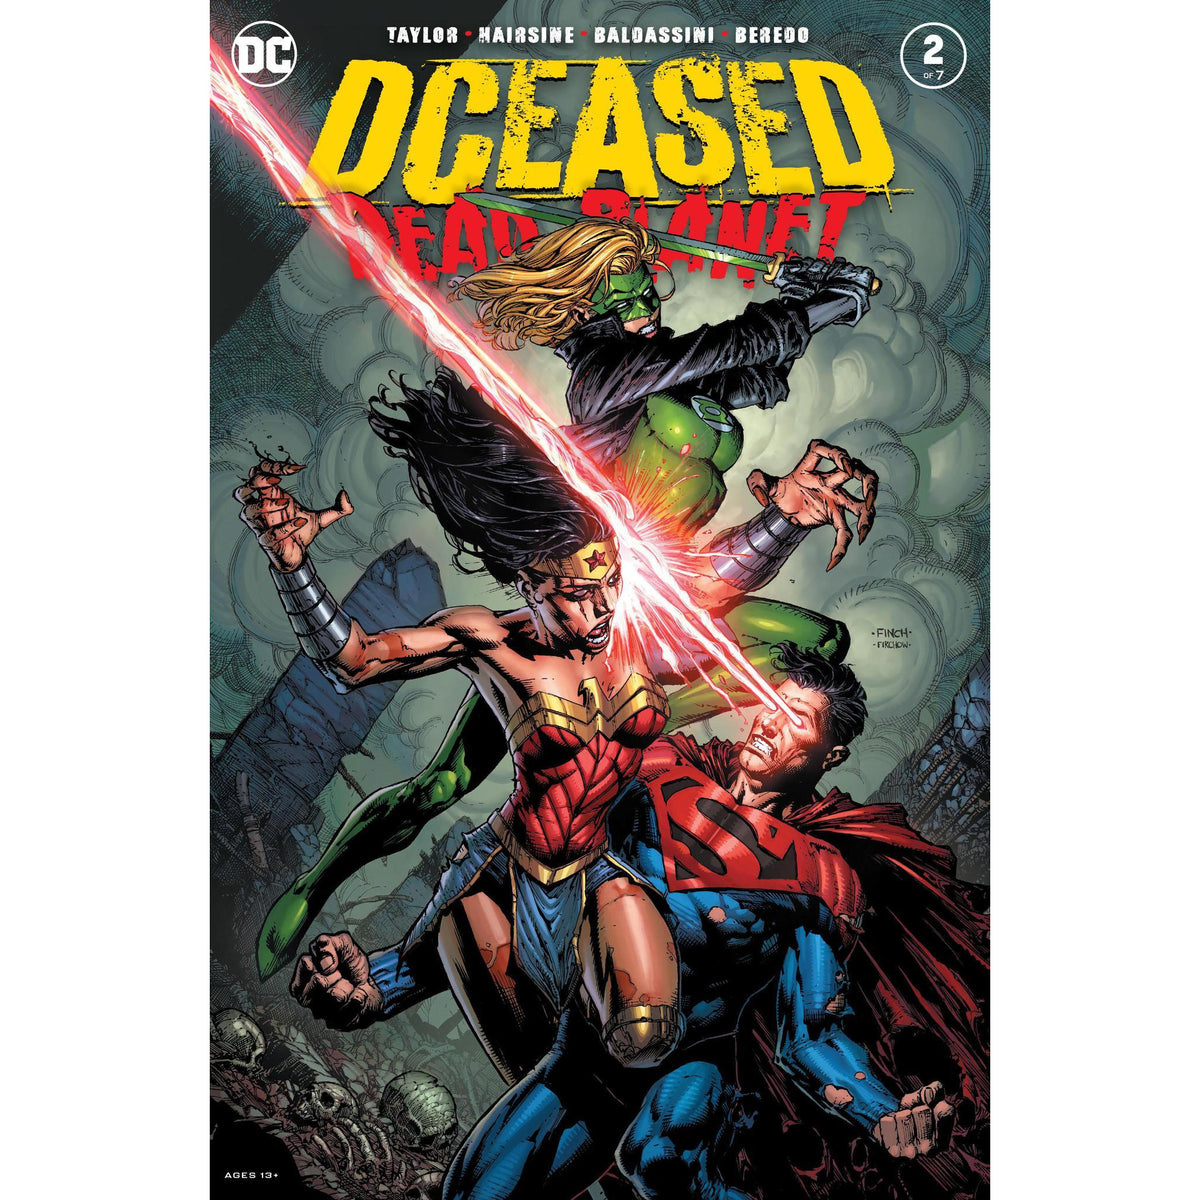 DCEASED DEAD PLANET #2 (OF 6) FINCH MAIN COVER